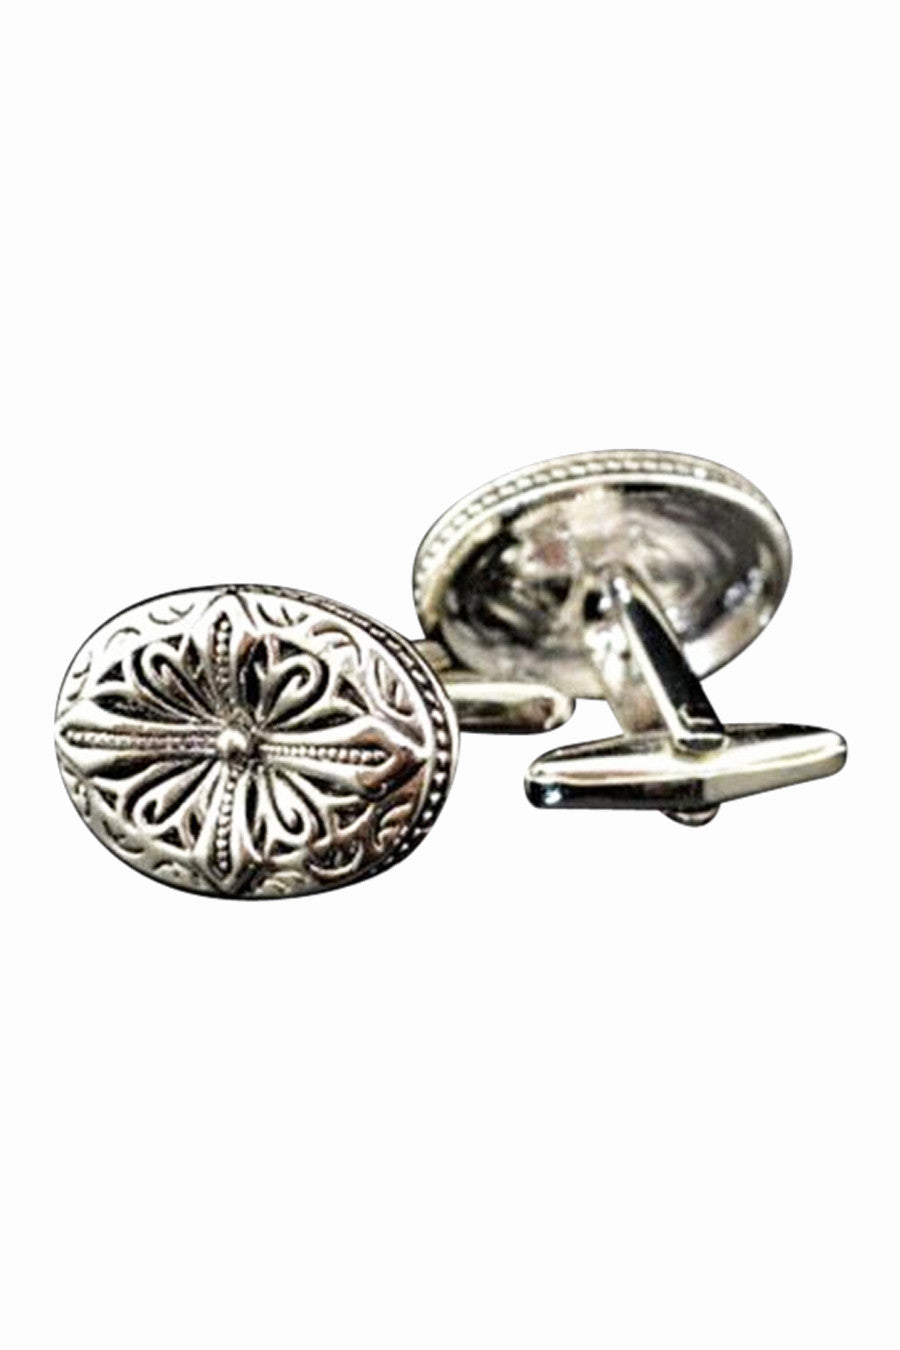 Vintage Style Silver Cufflinks For Men